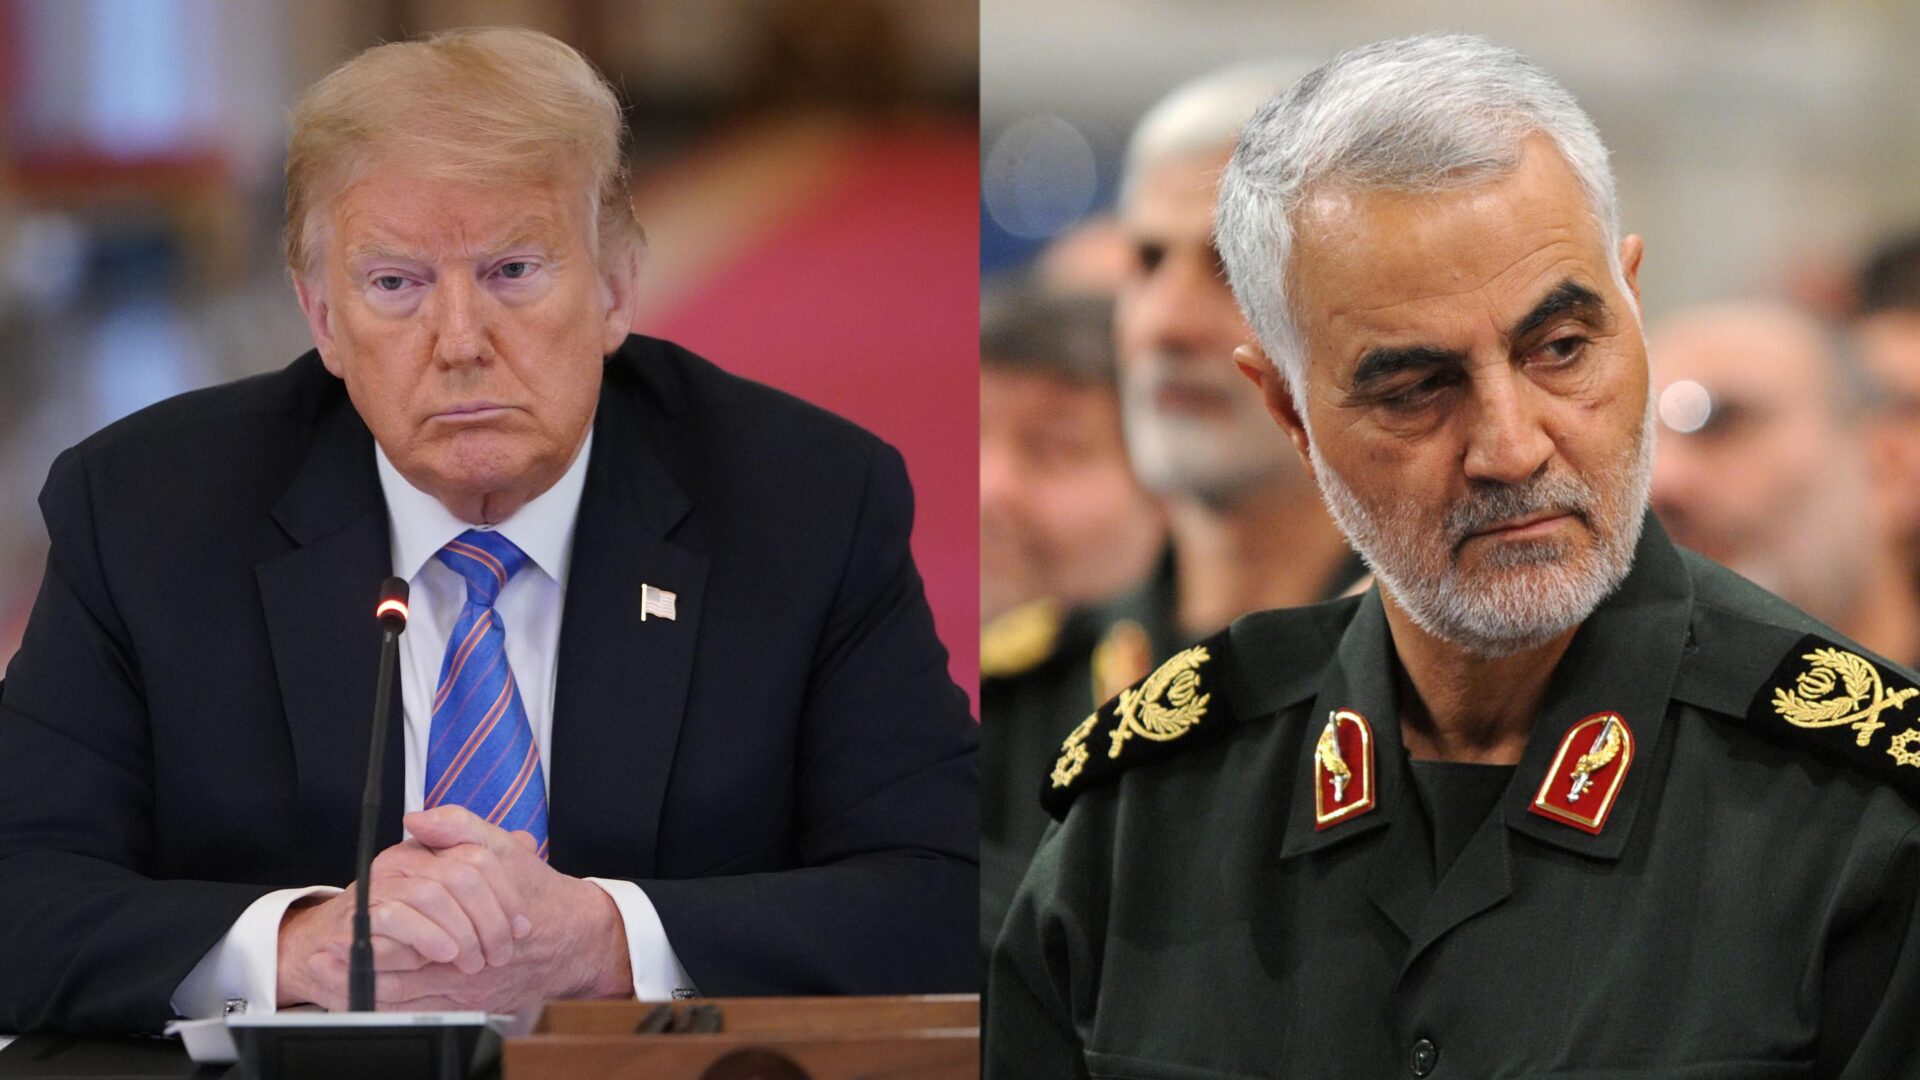 General Qassem Soleimani and President Trump